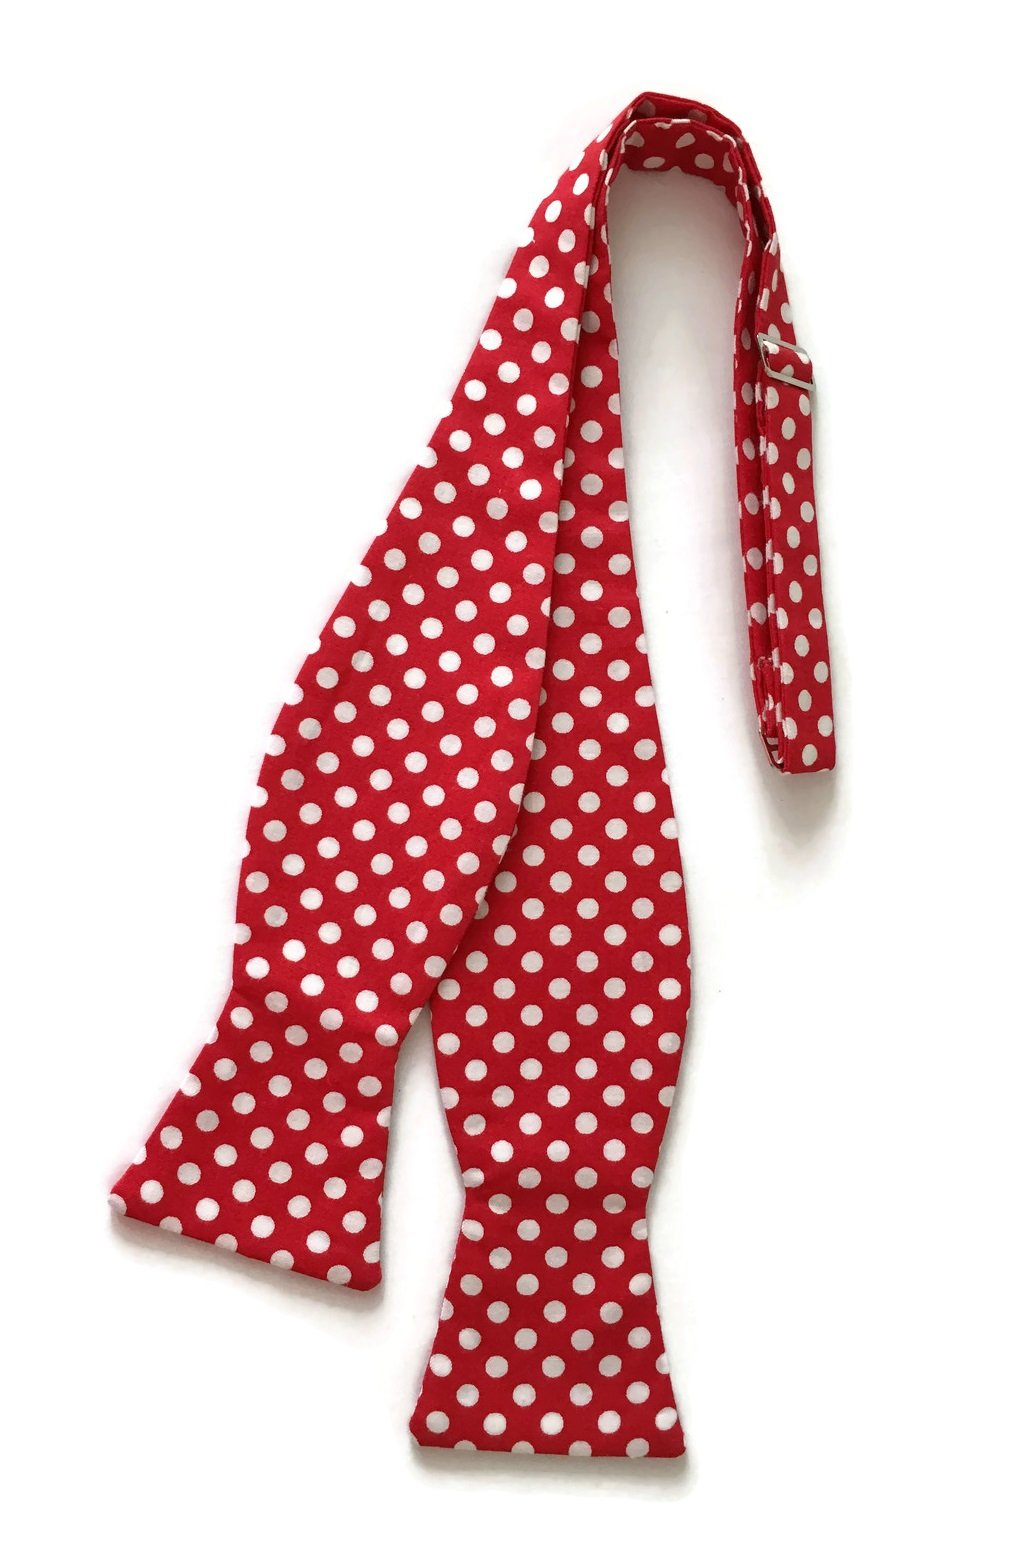 Men's Self-Tie Bow Tie in Red and White Polka Dots (Boys)